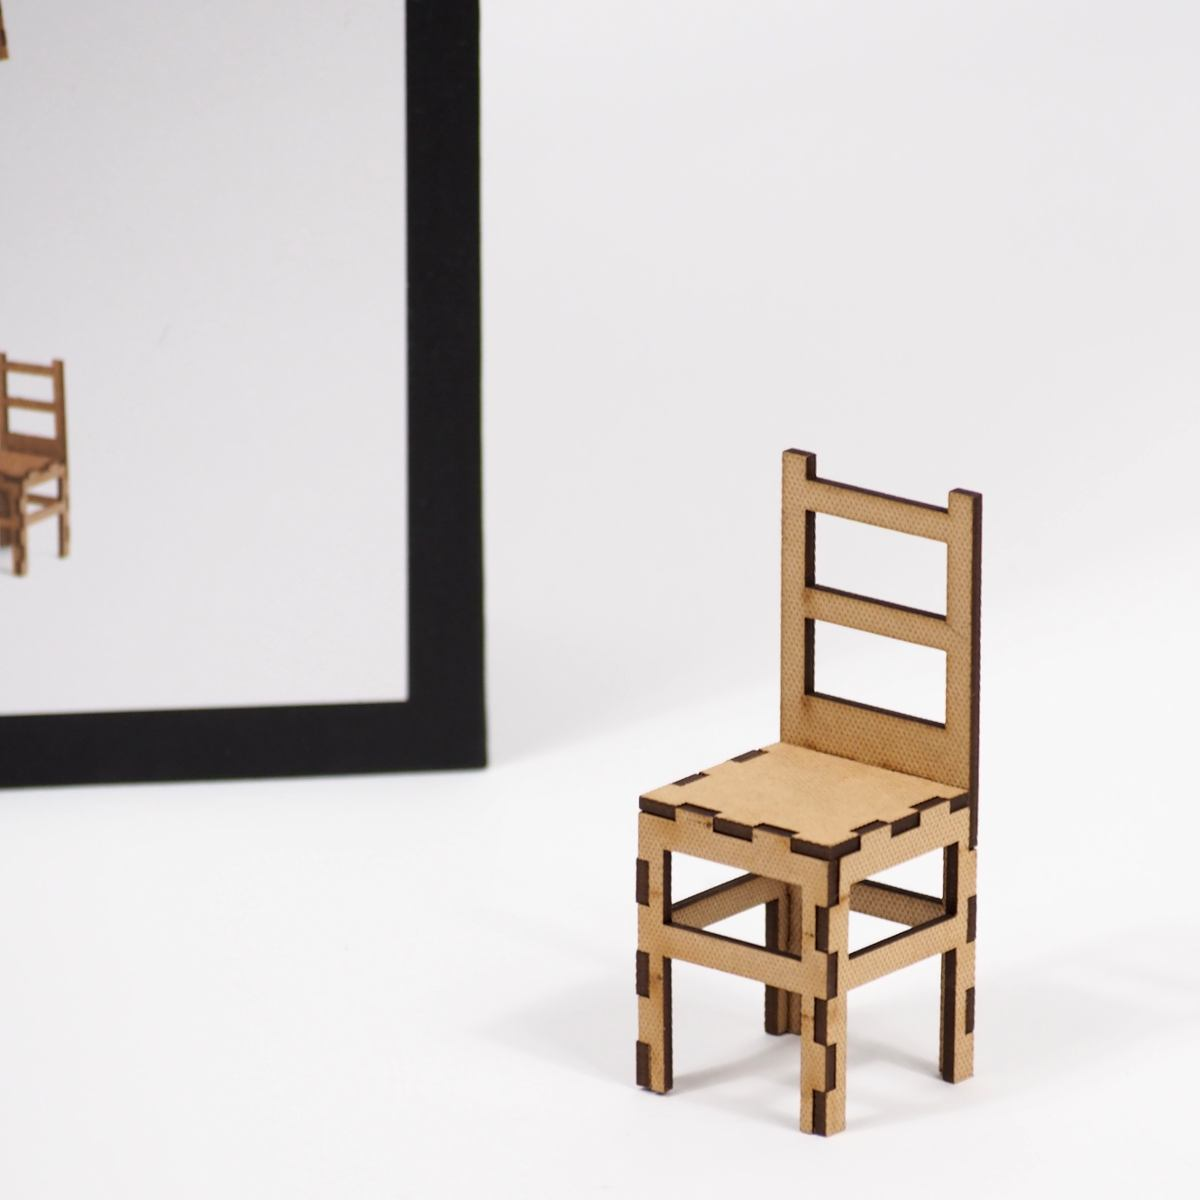 Artistic Stacking Game with 29 Wooden Chairs